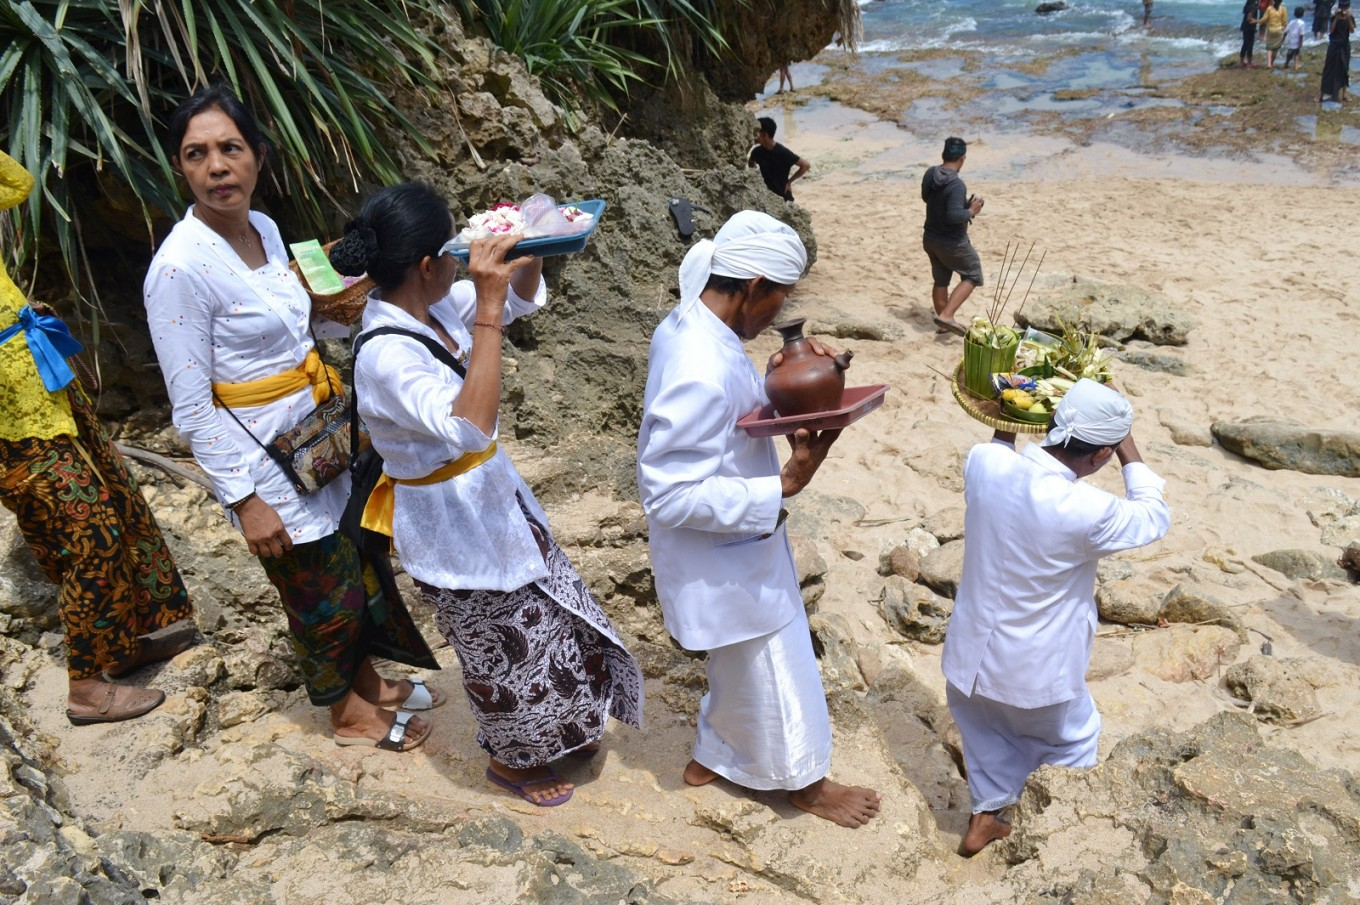 Melasti participants walk toward the shore for the larungan ritual.